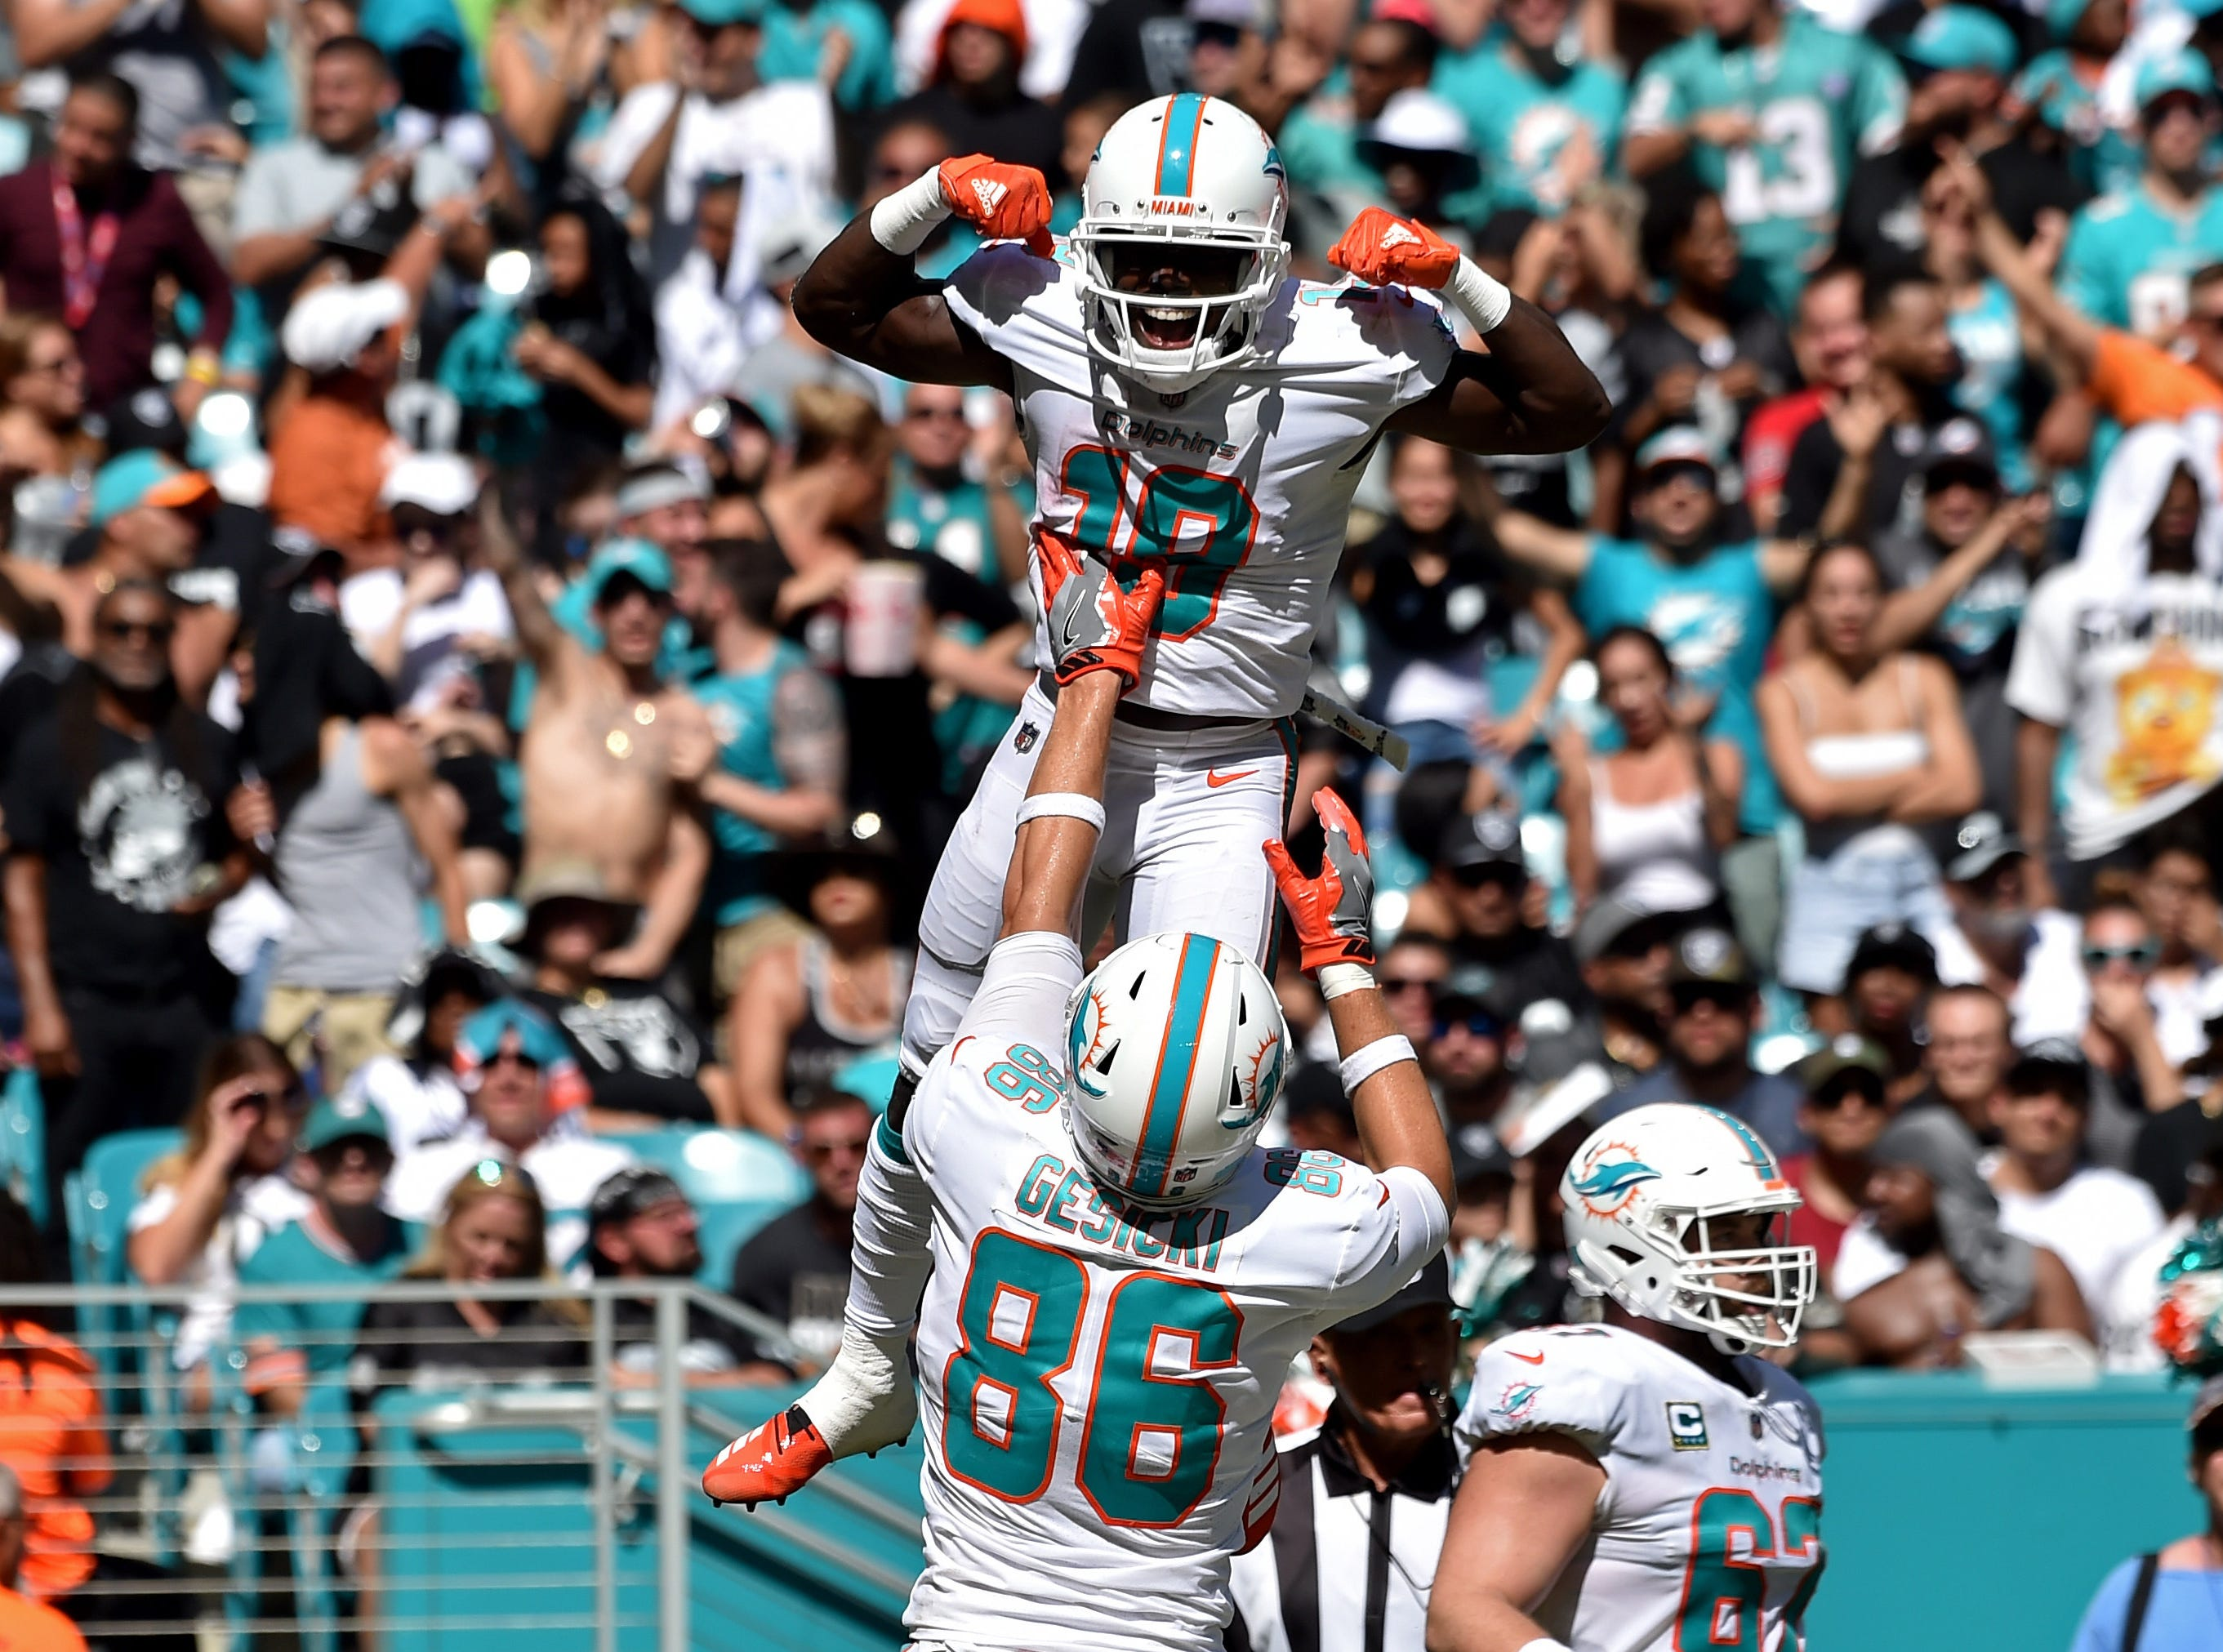 Miami Dolphins wide receiver Jakeem Grant celebrates with tight end Mike Gesicki after scoring a touchdown during the second half against the Oakland Raiders at Hard Rock Stadium.